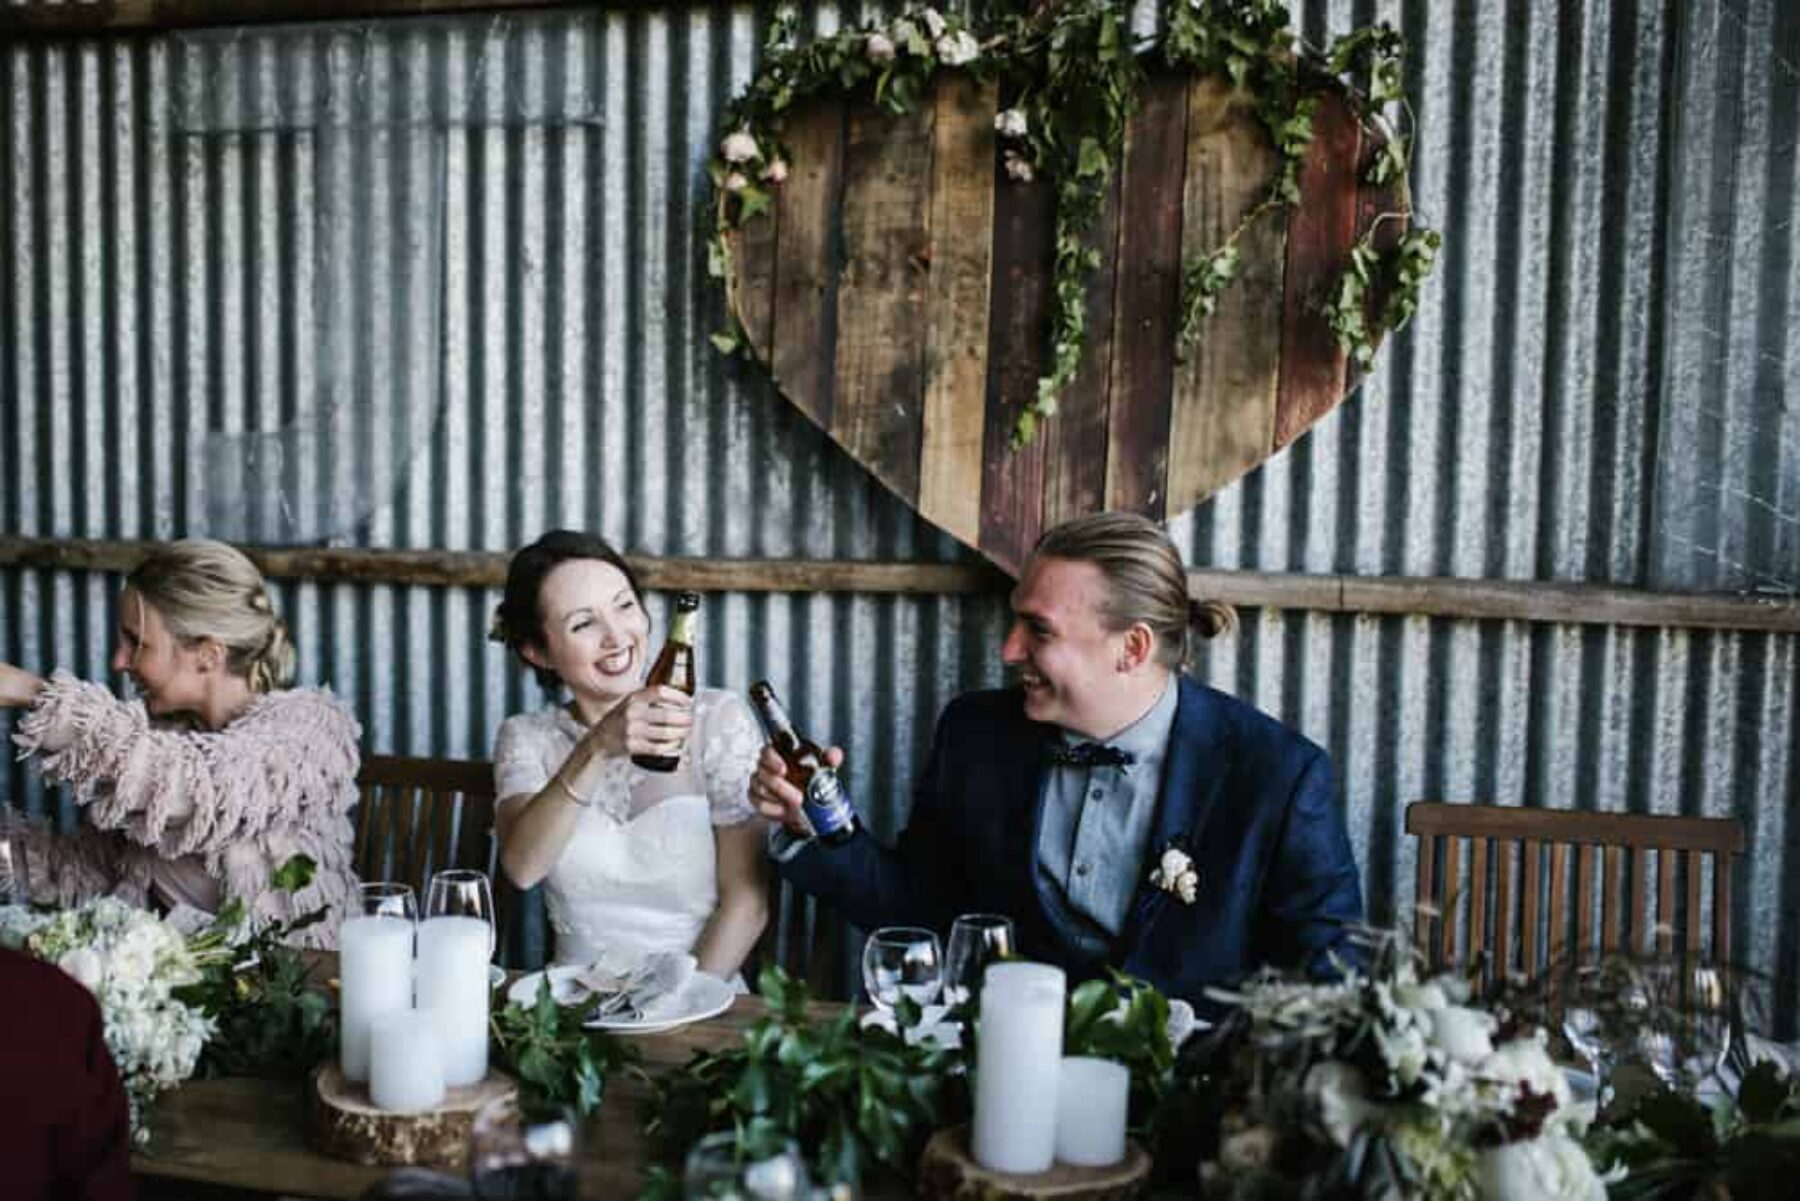 Rustic barn wedding in Kyneton Victoria / Photography by Brown Paper Parcel